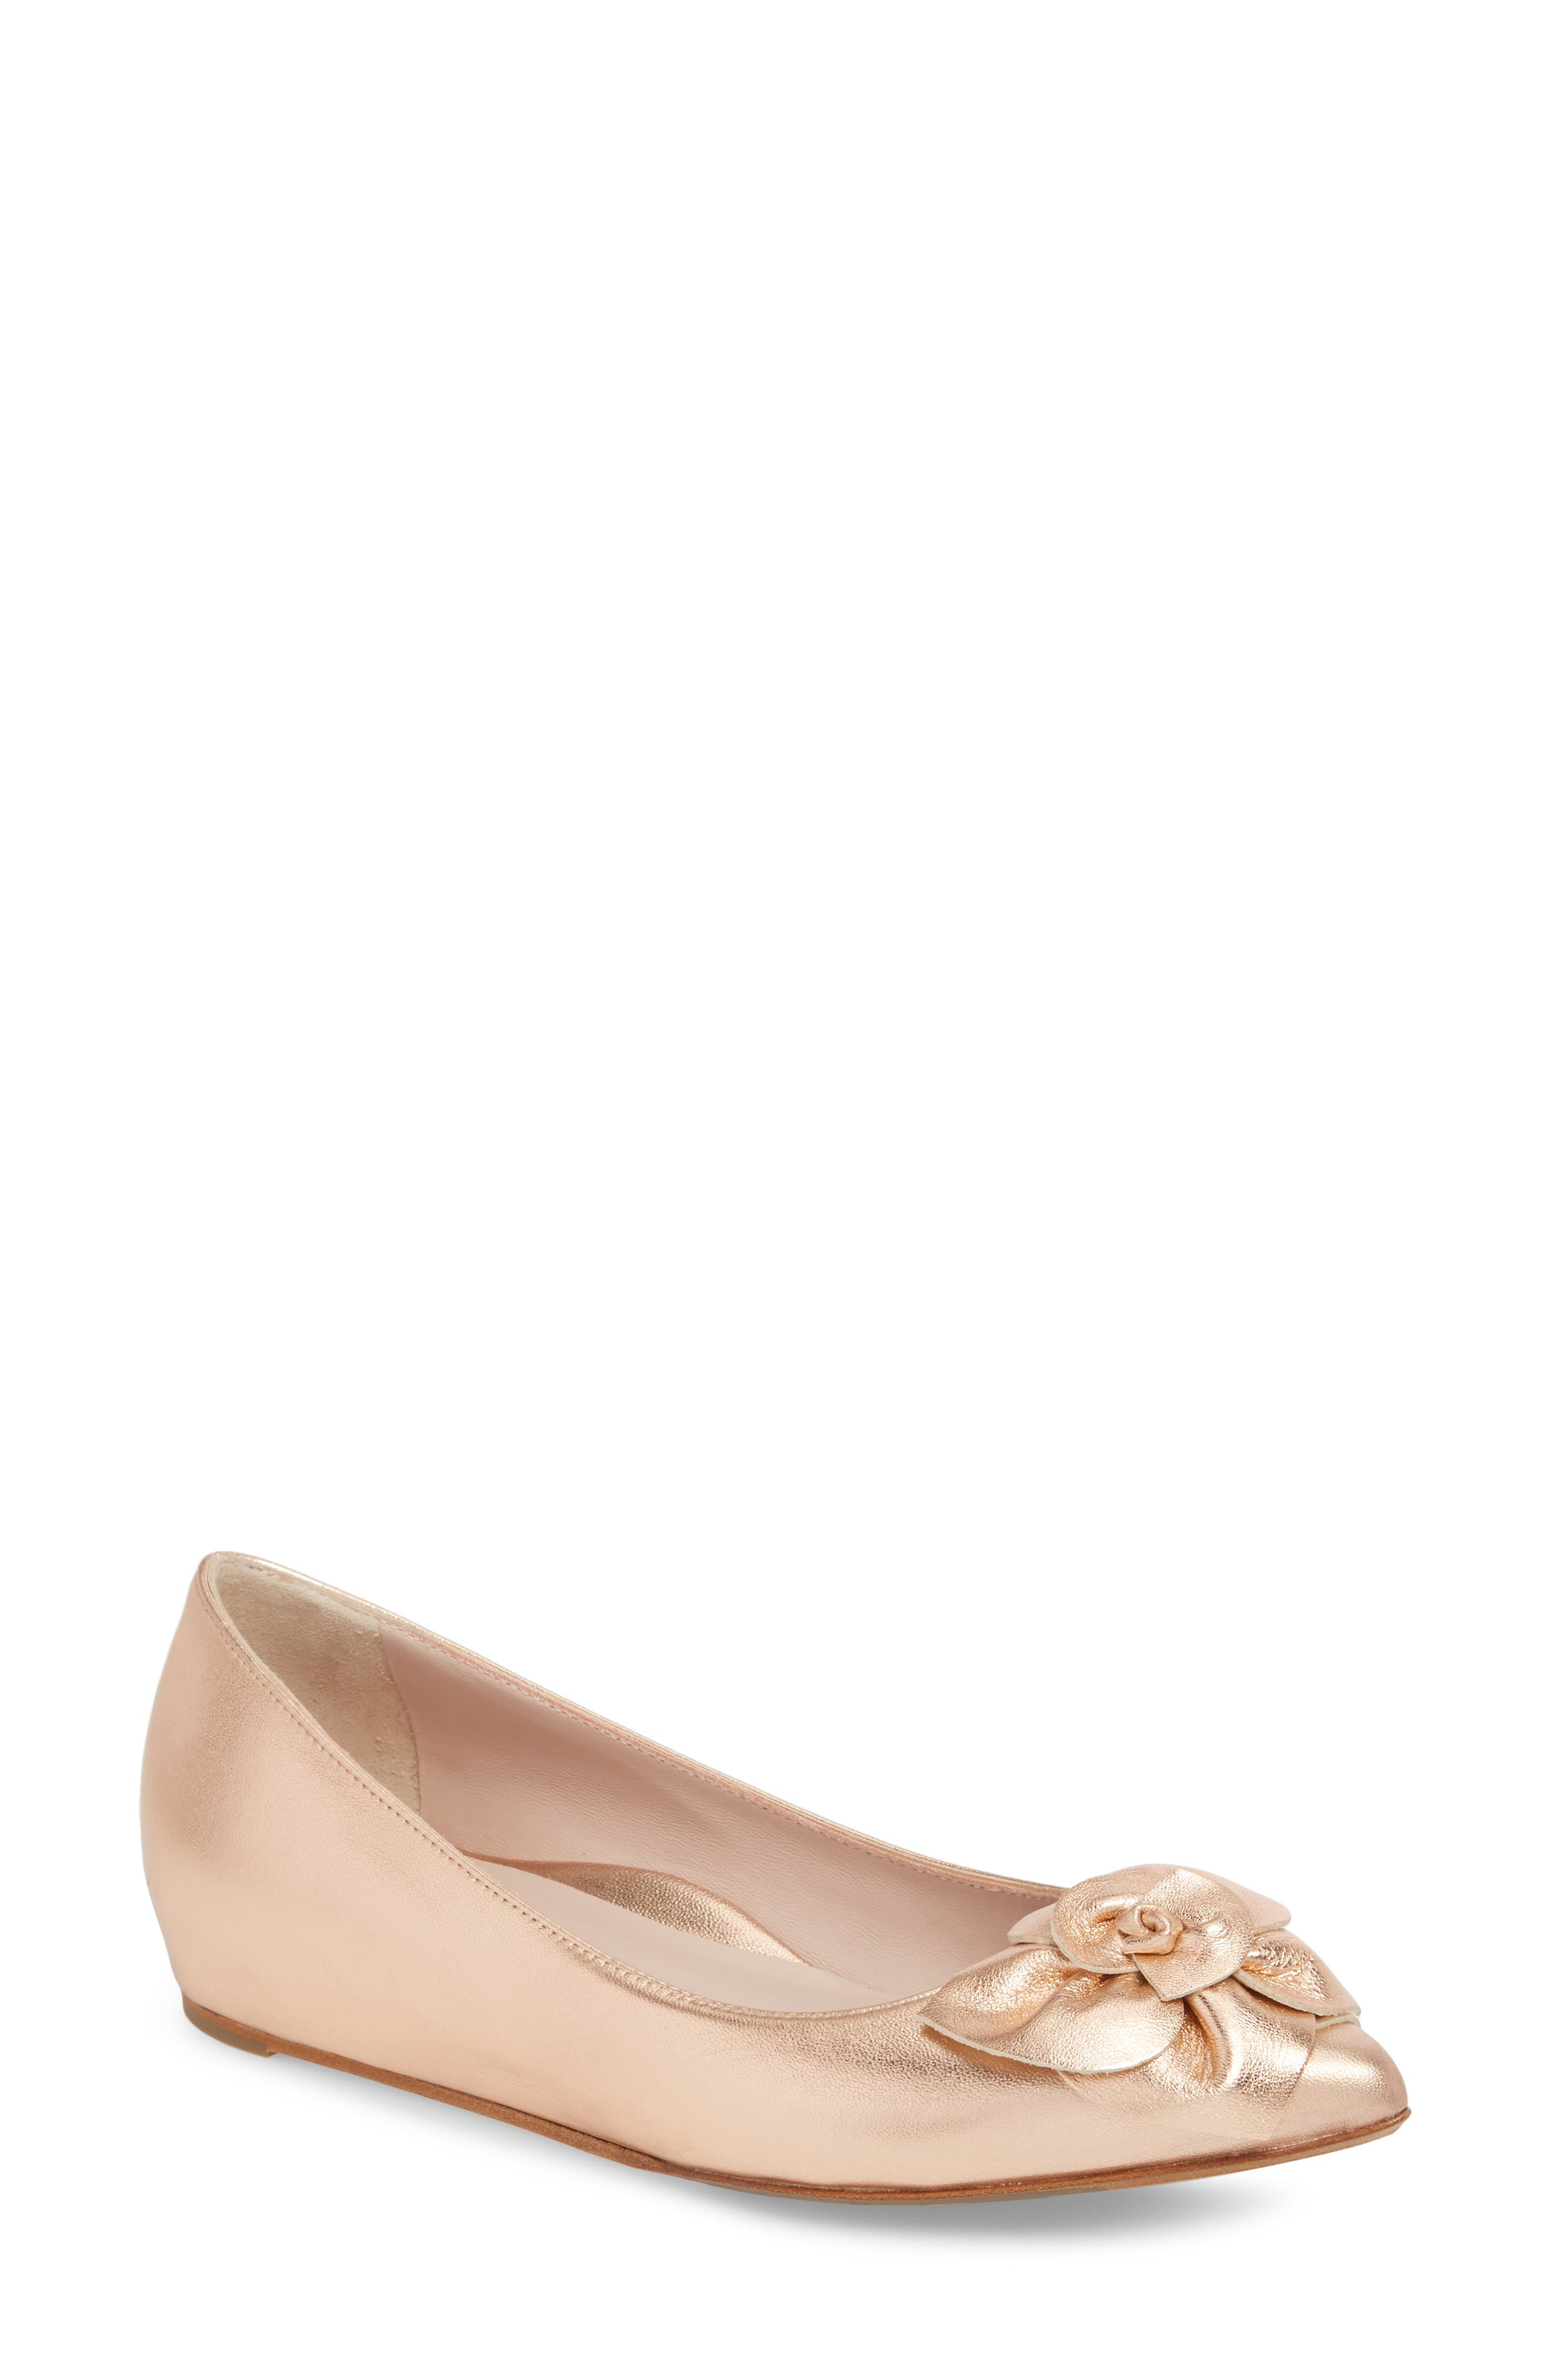 Rialta Flat,                         Main,                         color, ROSE GOLD LEATHER